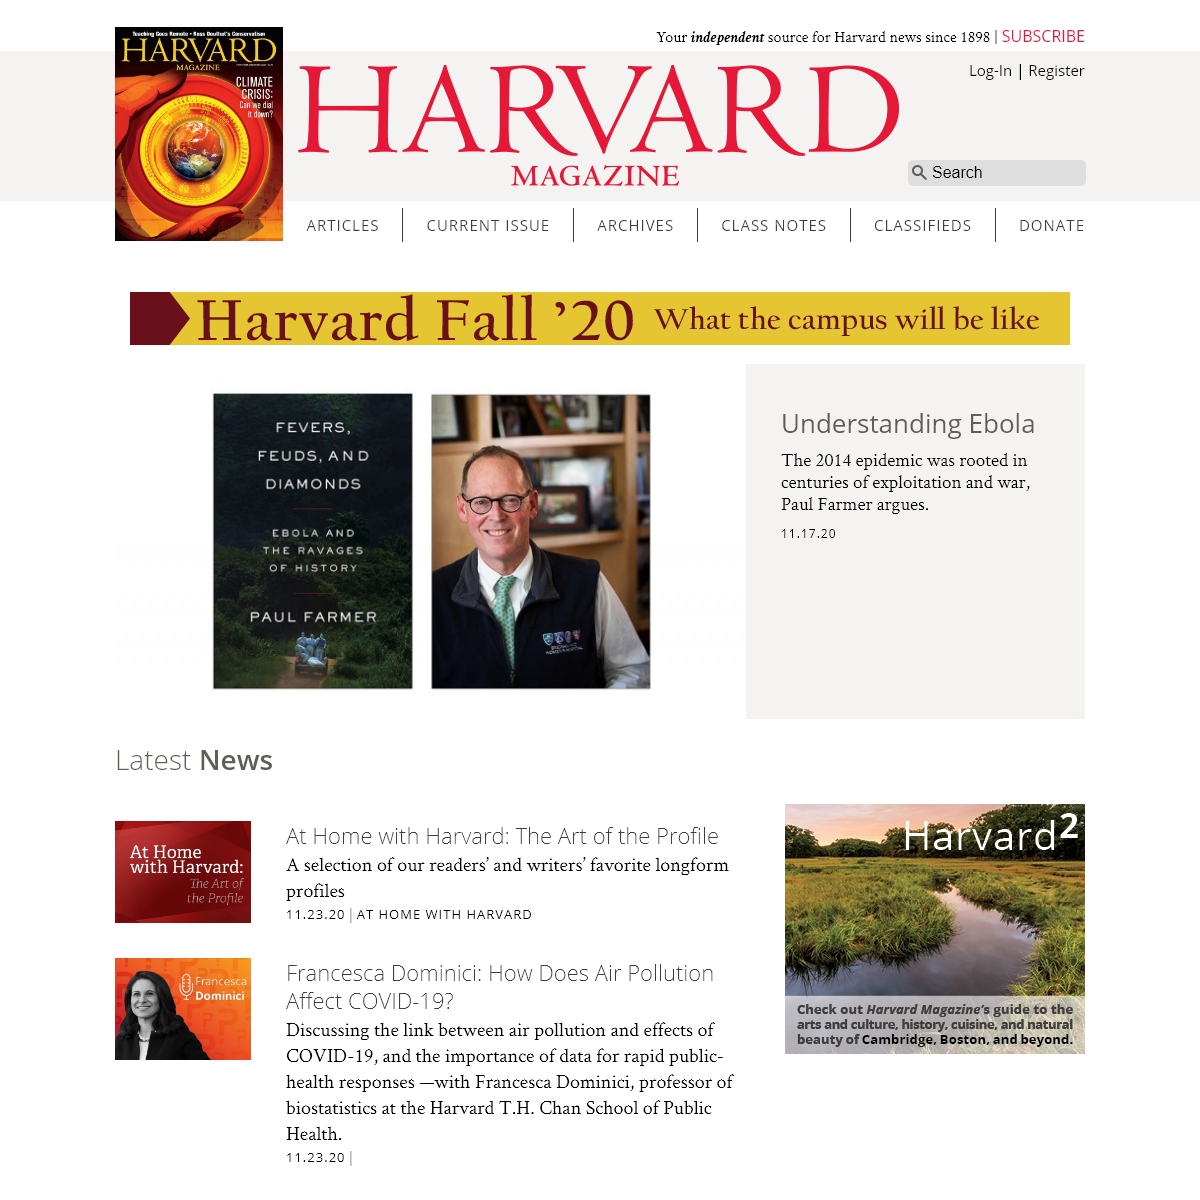 Harvard Magazine - Your editorially independent source for Harvard news, research, arts, and more.